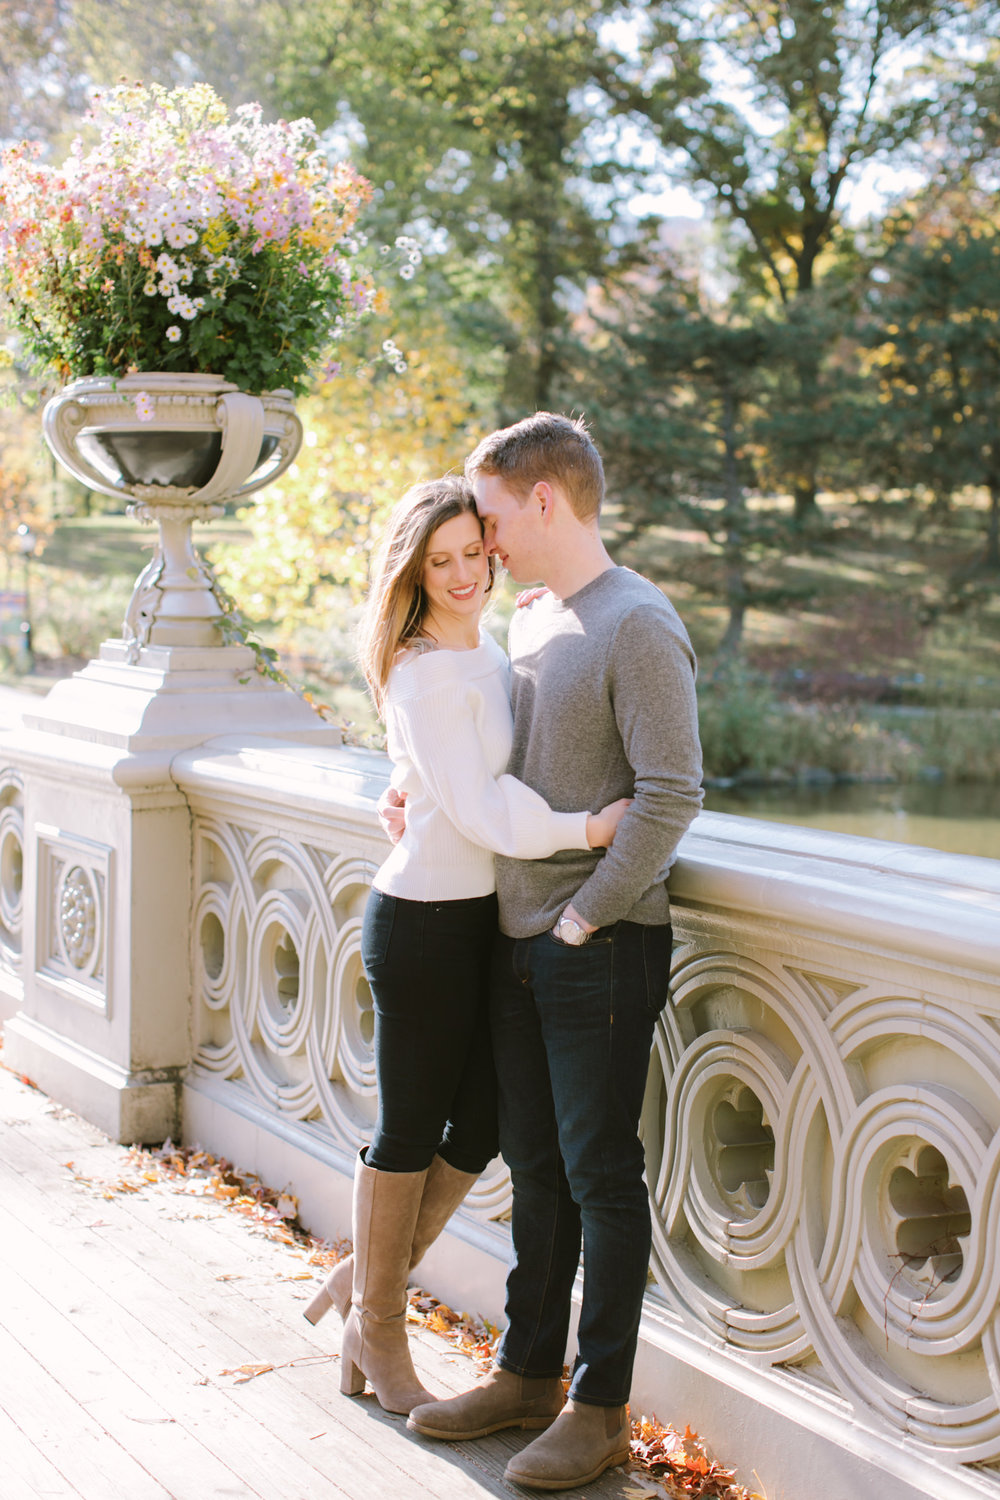 Central-park-fall-engagement-session-by Tanya Isaeva-58.jpg